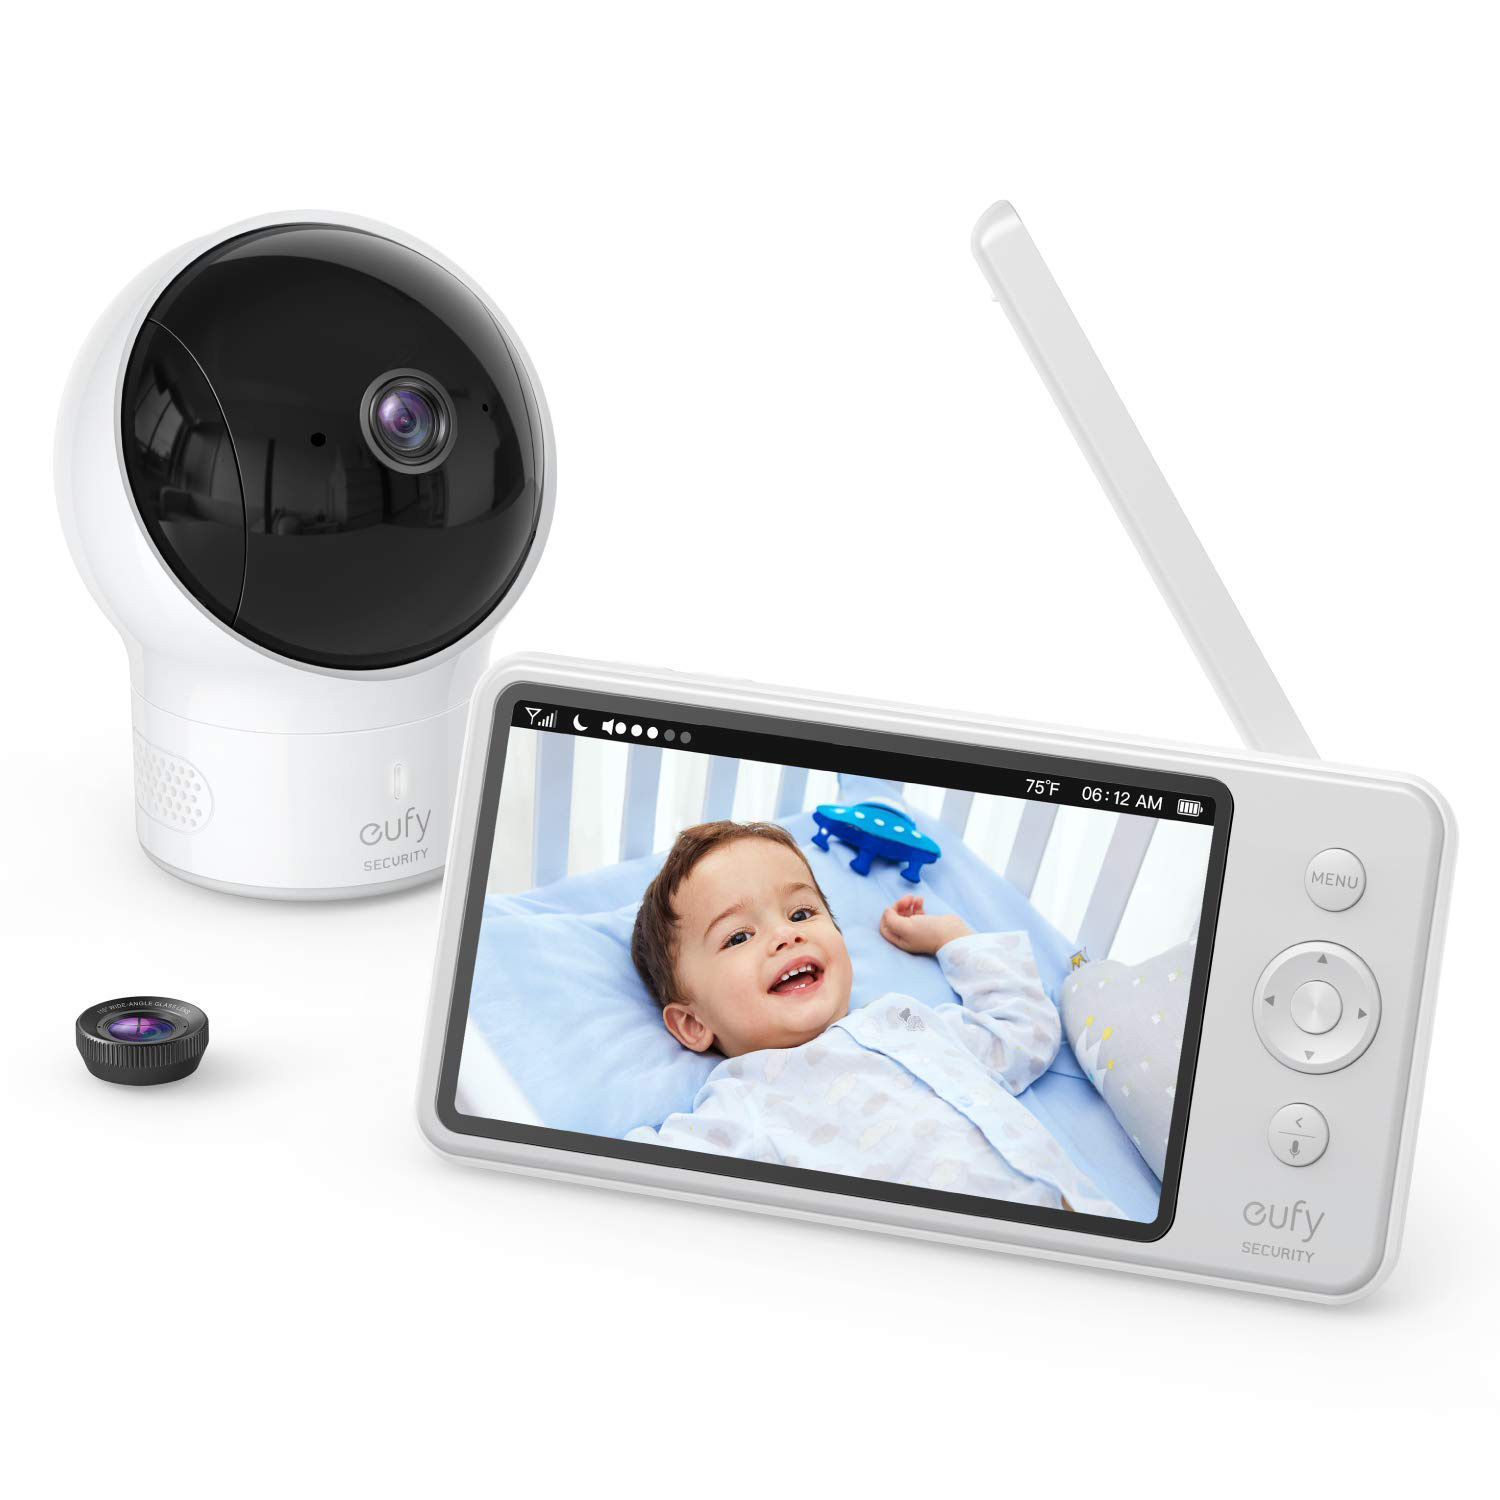 Baby Monitor, eufy Security Video Baby Monitor, 720p HD Resolution, Ideal for New Moms, 5'' LCD Display, 110° Wide-Angle Lens Included